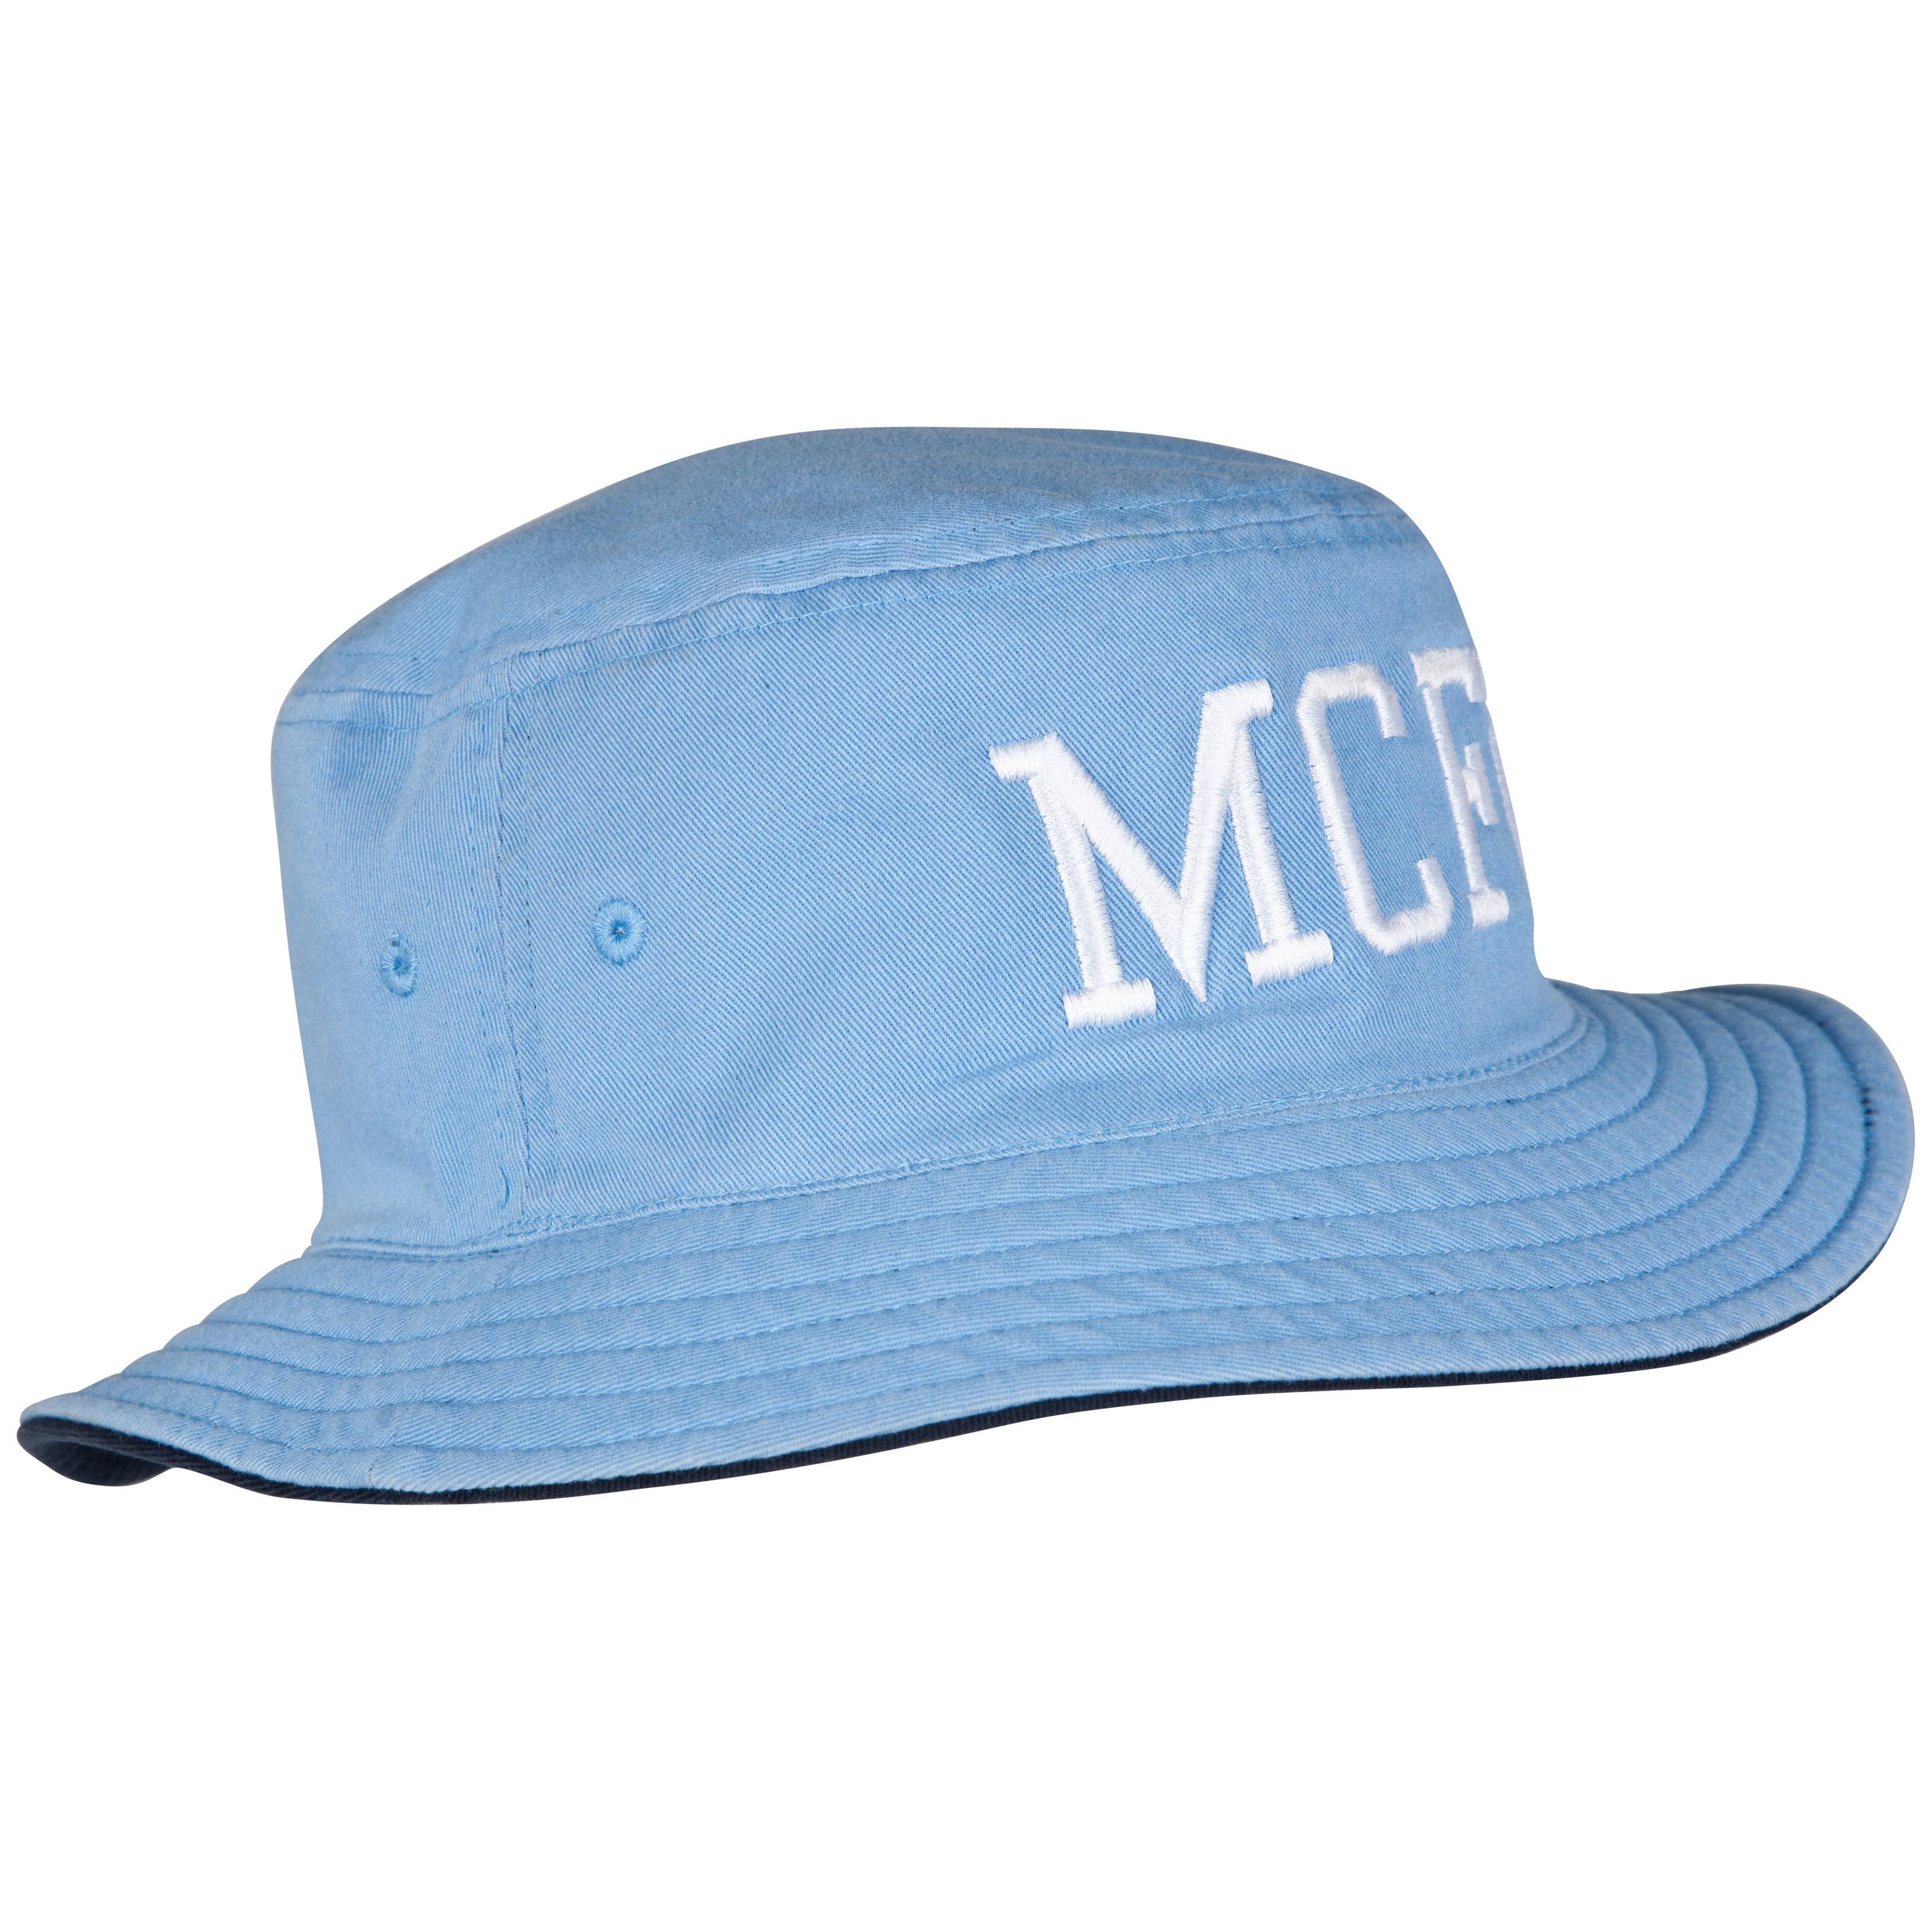 Manchester City Sideline Hat - Navy/Sky - Junior